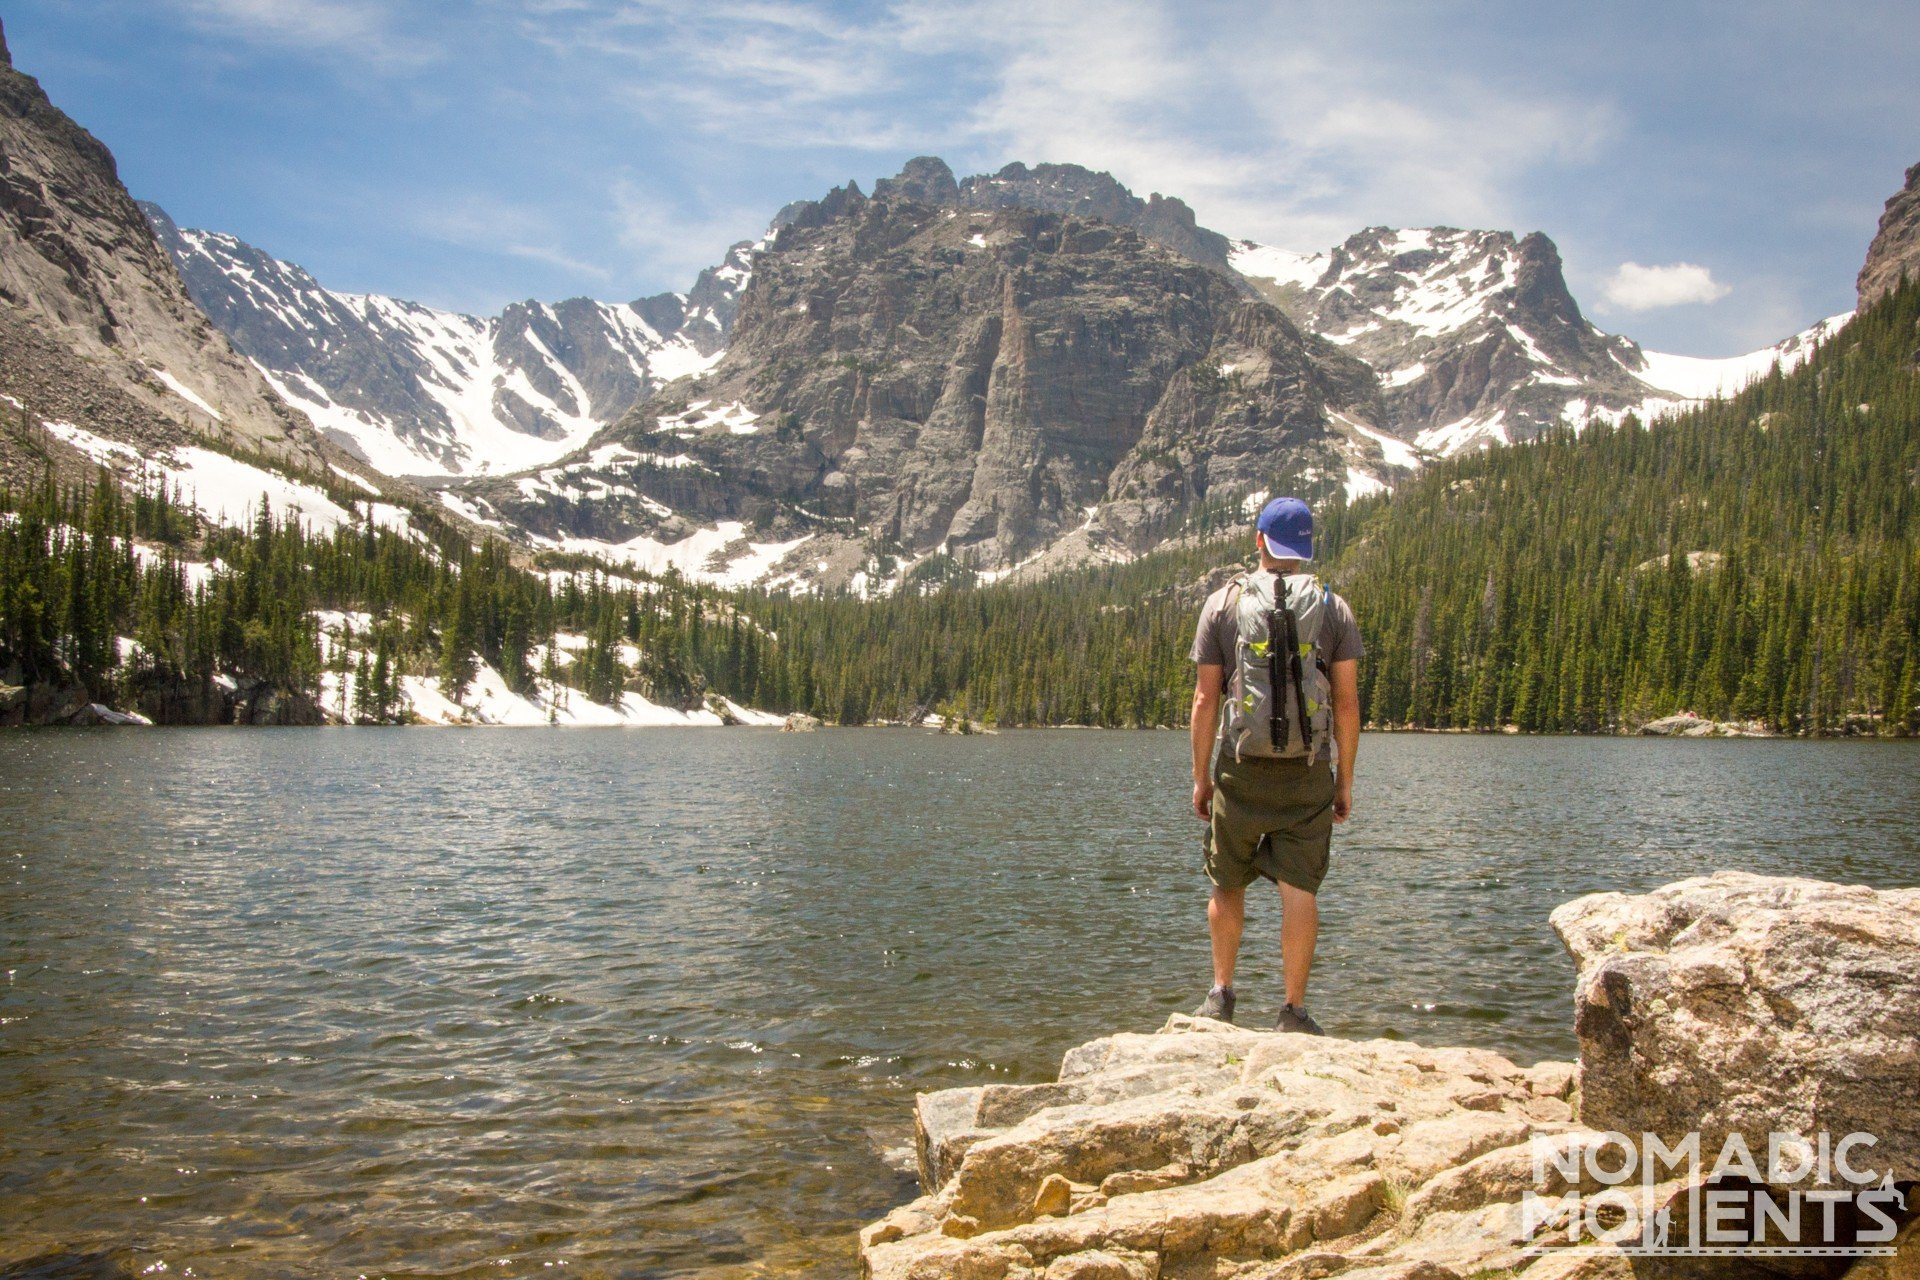 A hiker stands on the shore of The Loch after hiking on one of the best trails in Rocky Mountain National Park.